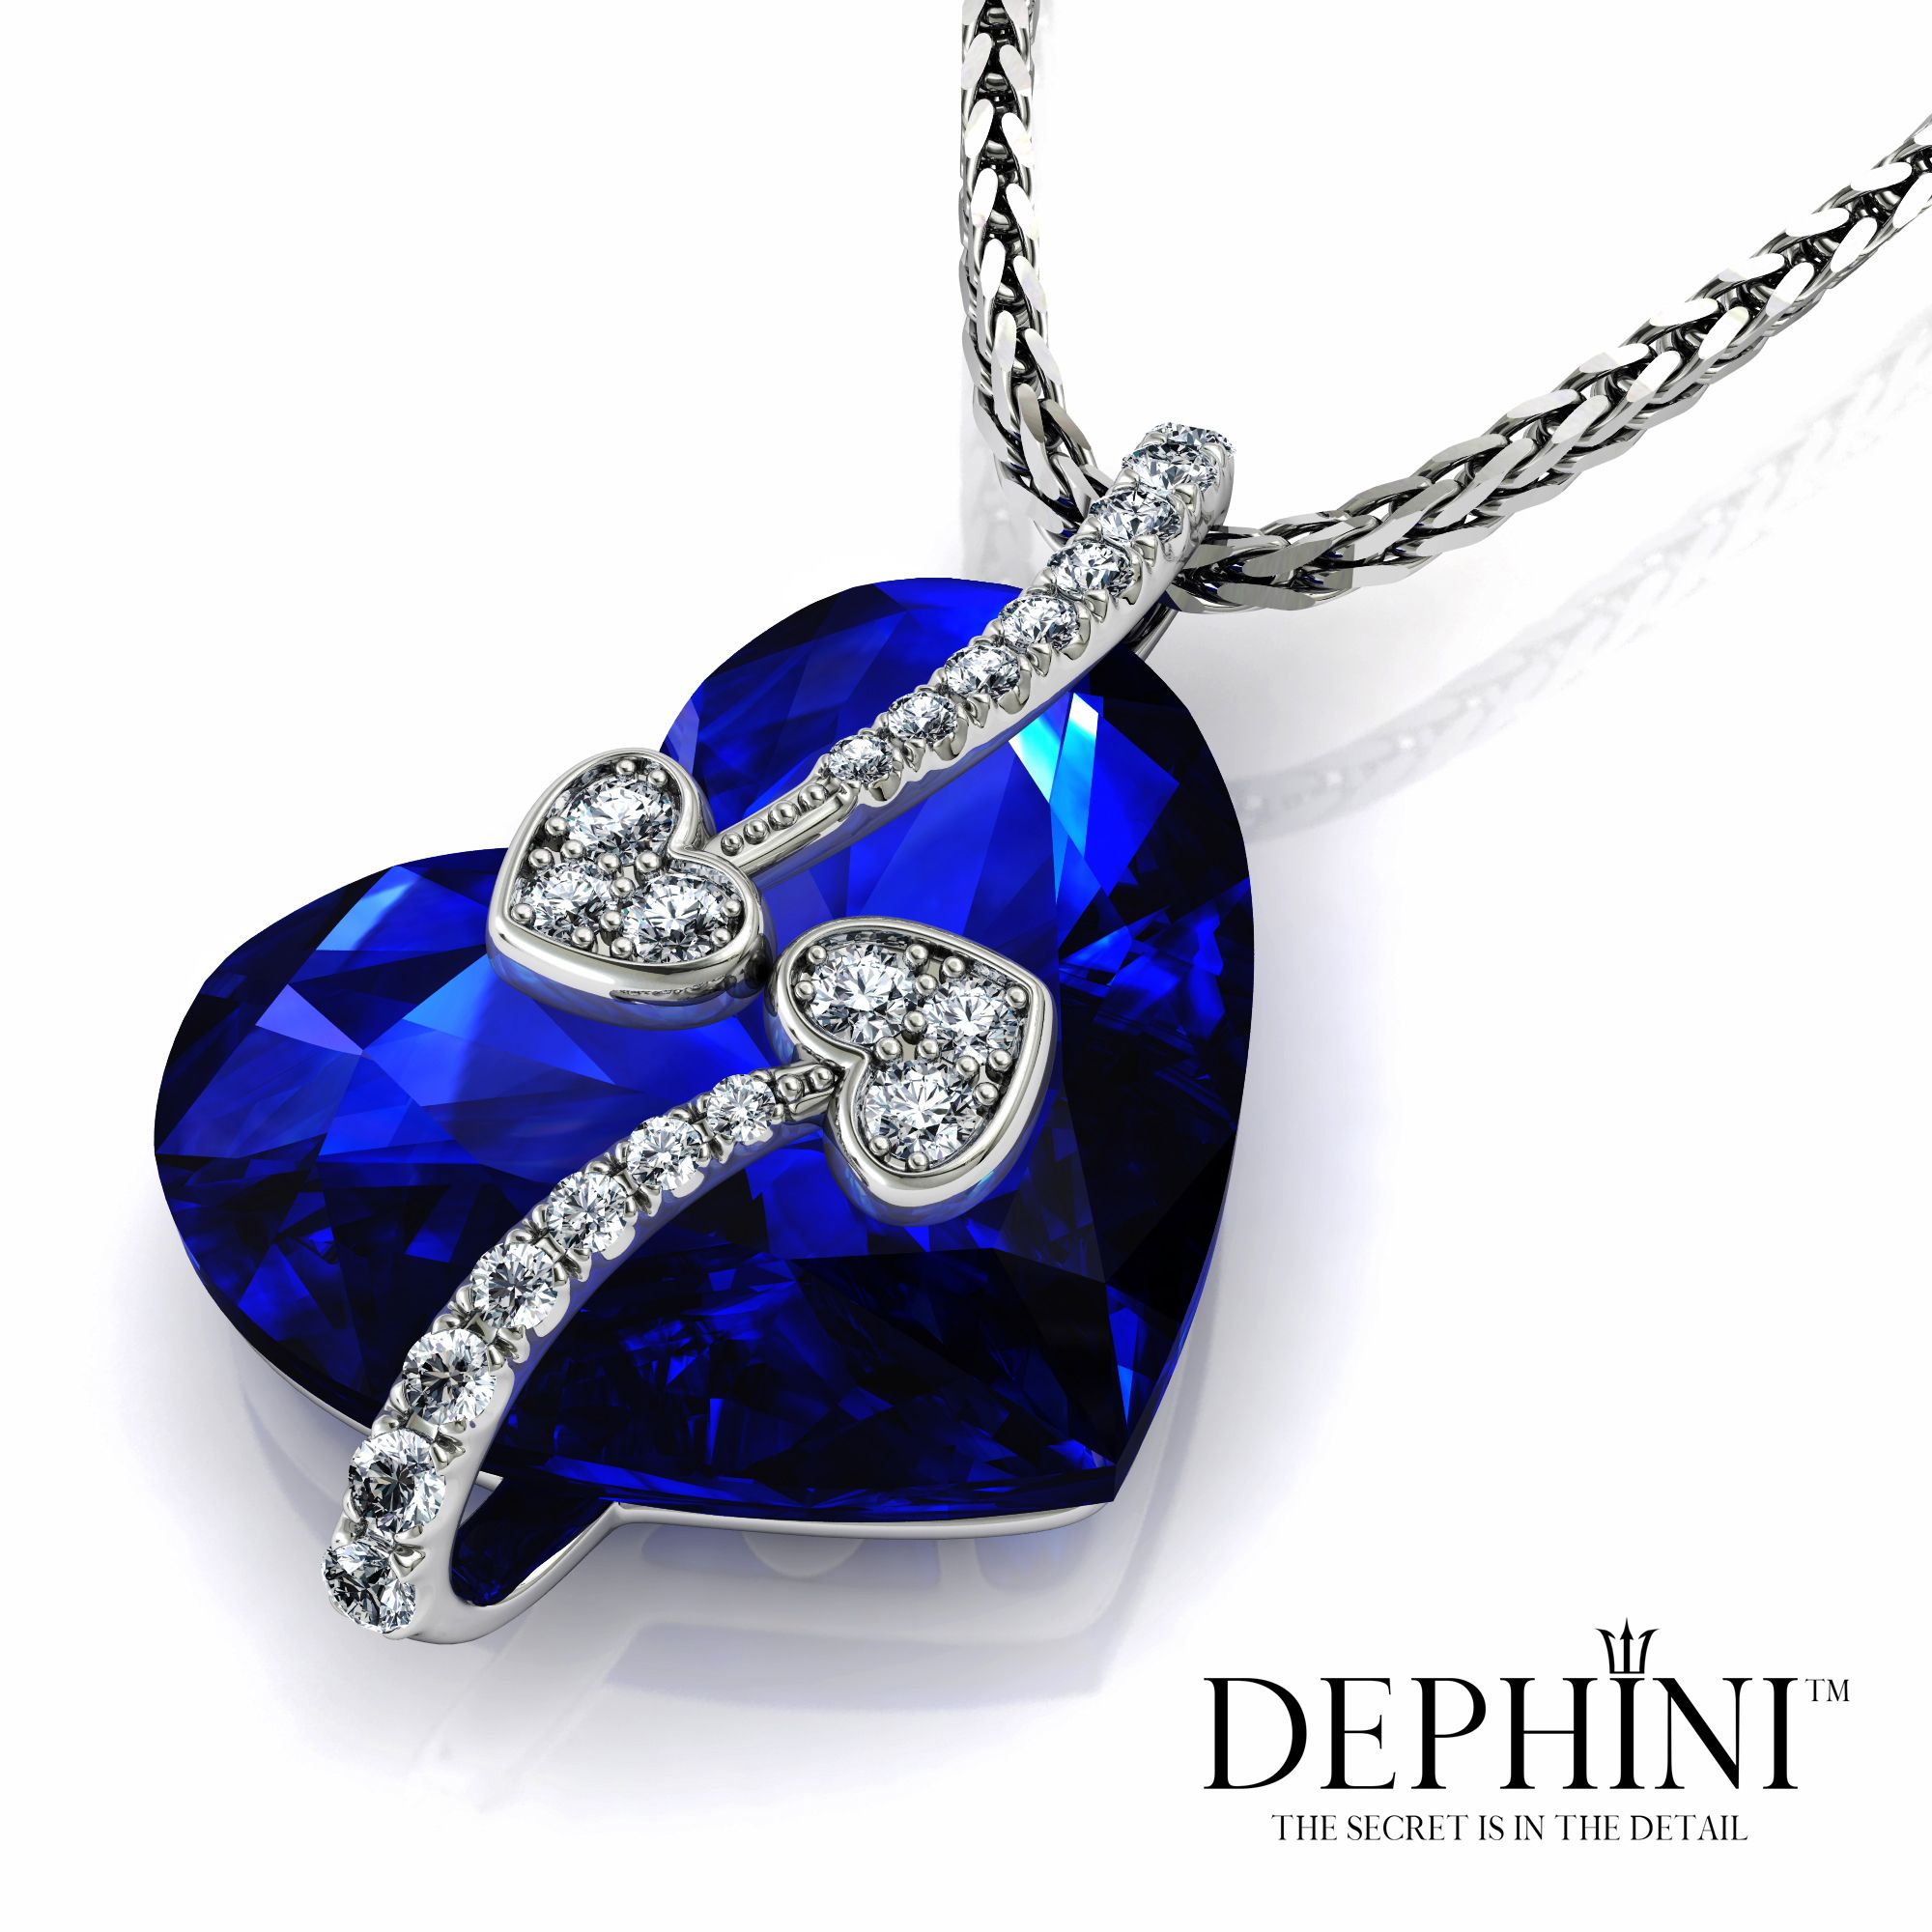 DEPHINI - Butterfly Necklace for women oHr4H